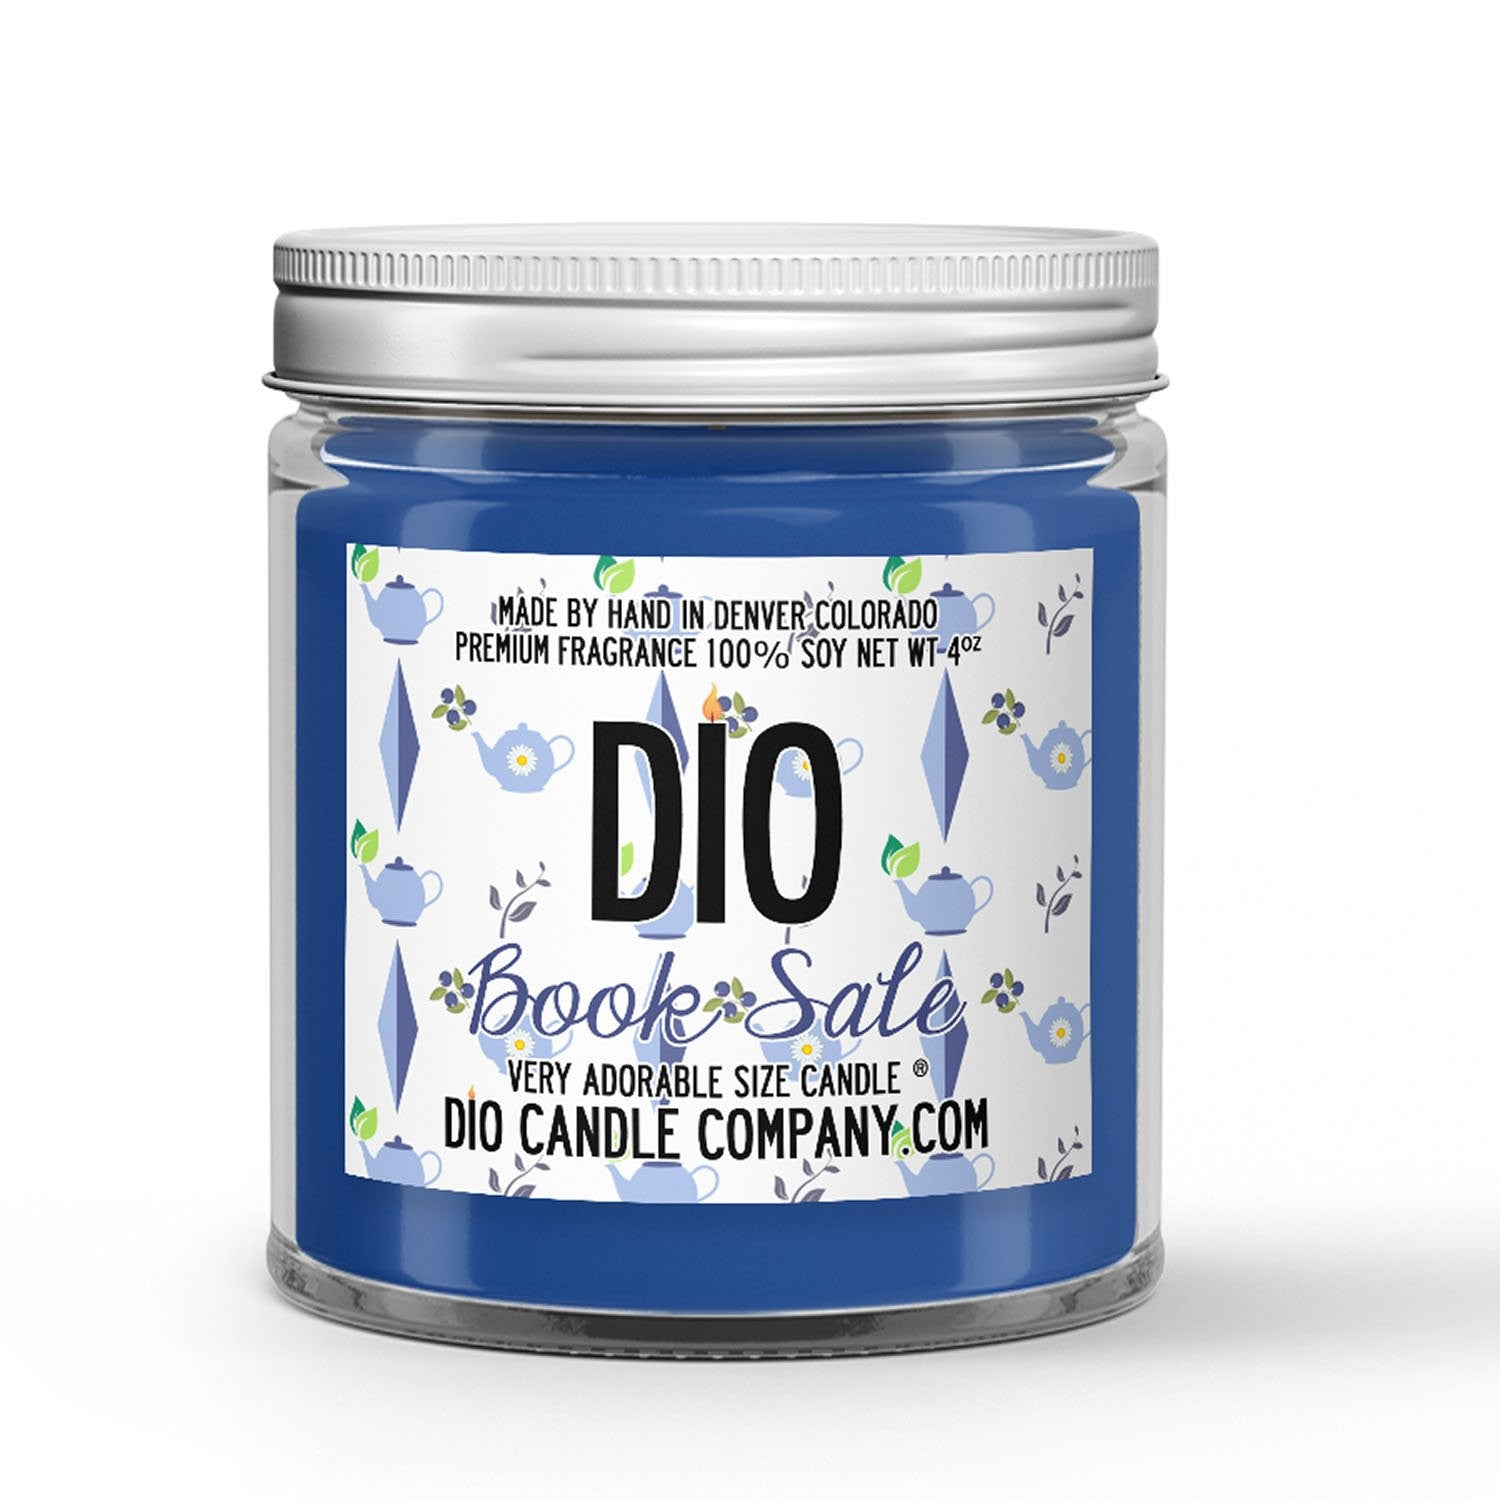 Book Sale Candle - Lemon Scone - Blueberry Earl Grey Tea - 4oz Very Adorable Size Candle® - Dio Candle Company